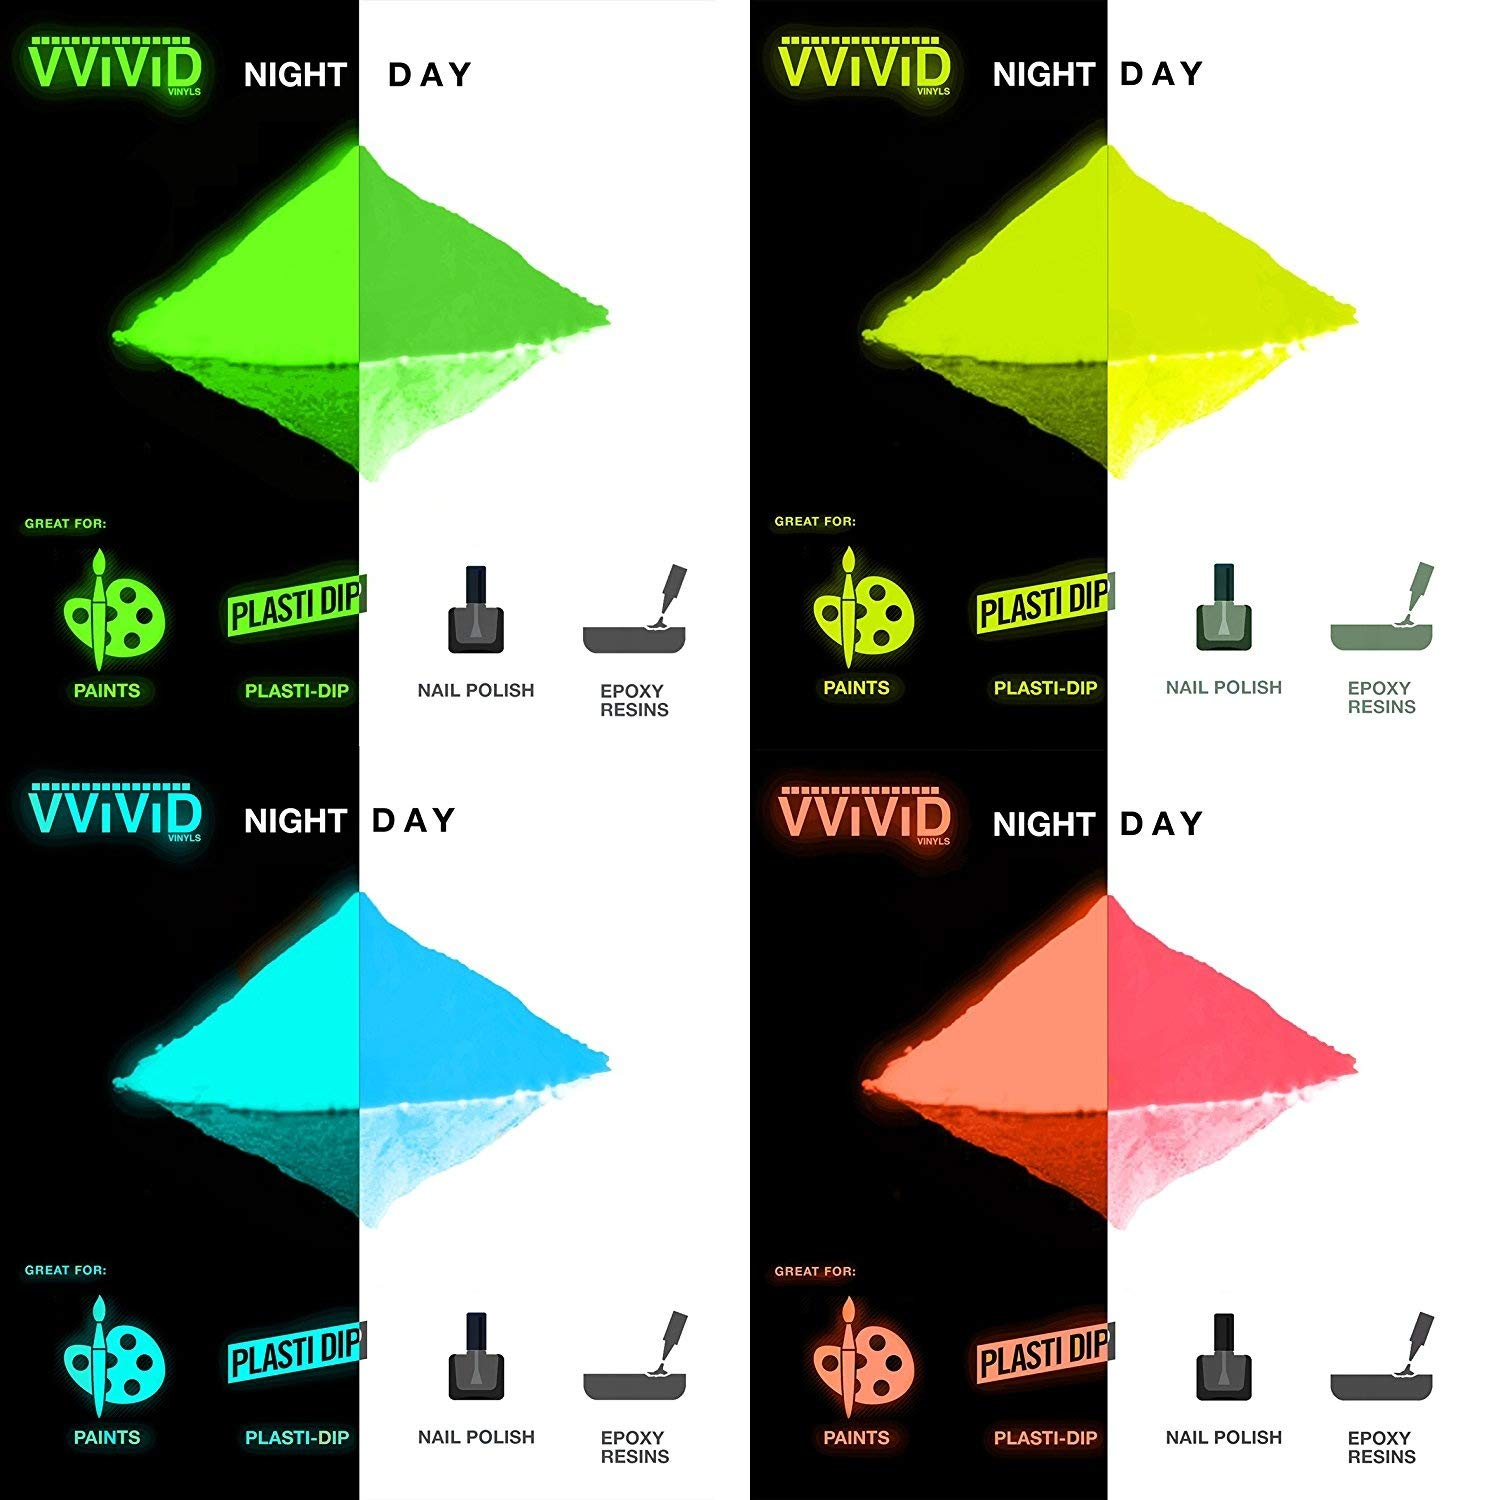 VViViD Prisma65 Glow in the Dark Pigment 30g Packet Multi Color Pack (7 Color Pack) 4336953565